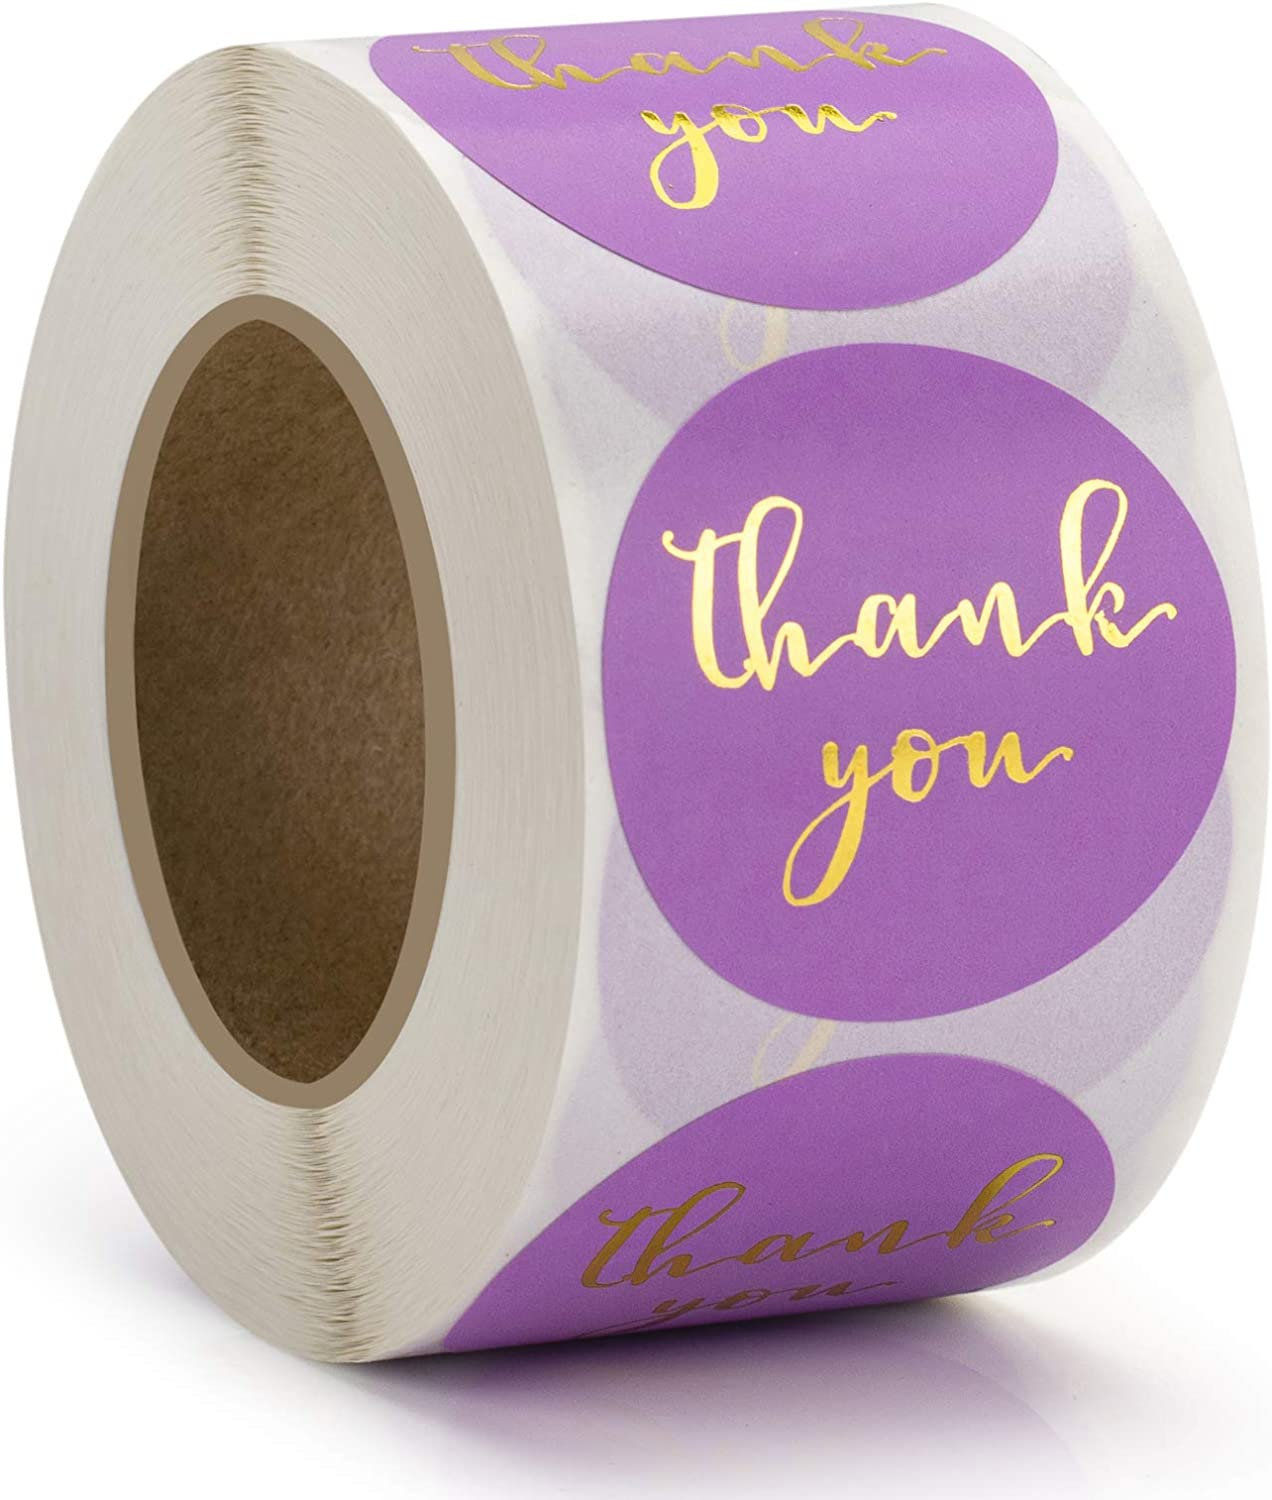 1.5'' Thank You Stickers, Adhesive Gold Font Thank You Stickers Labels, Round Small Business Stickers, Ideal for Bakery, Boutiques,Retailers & Small Business Owners, 500 Labels Per Roll (Purple)